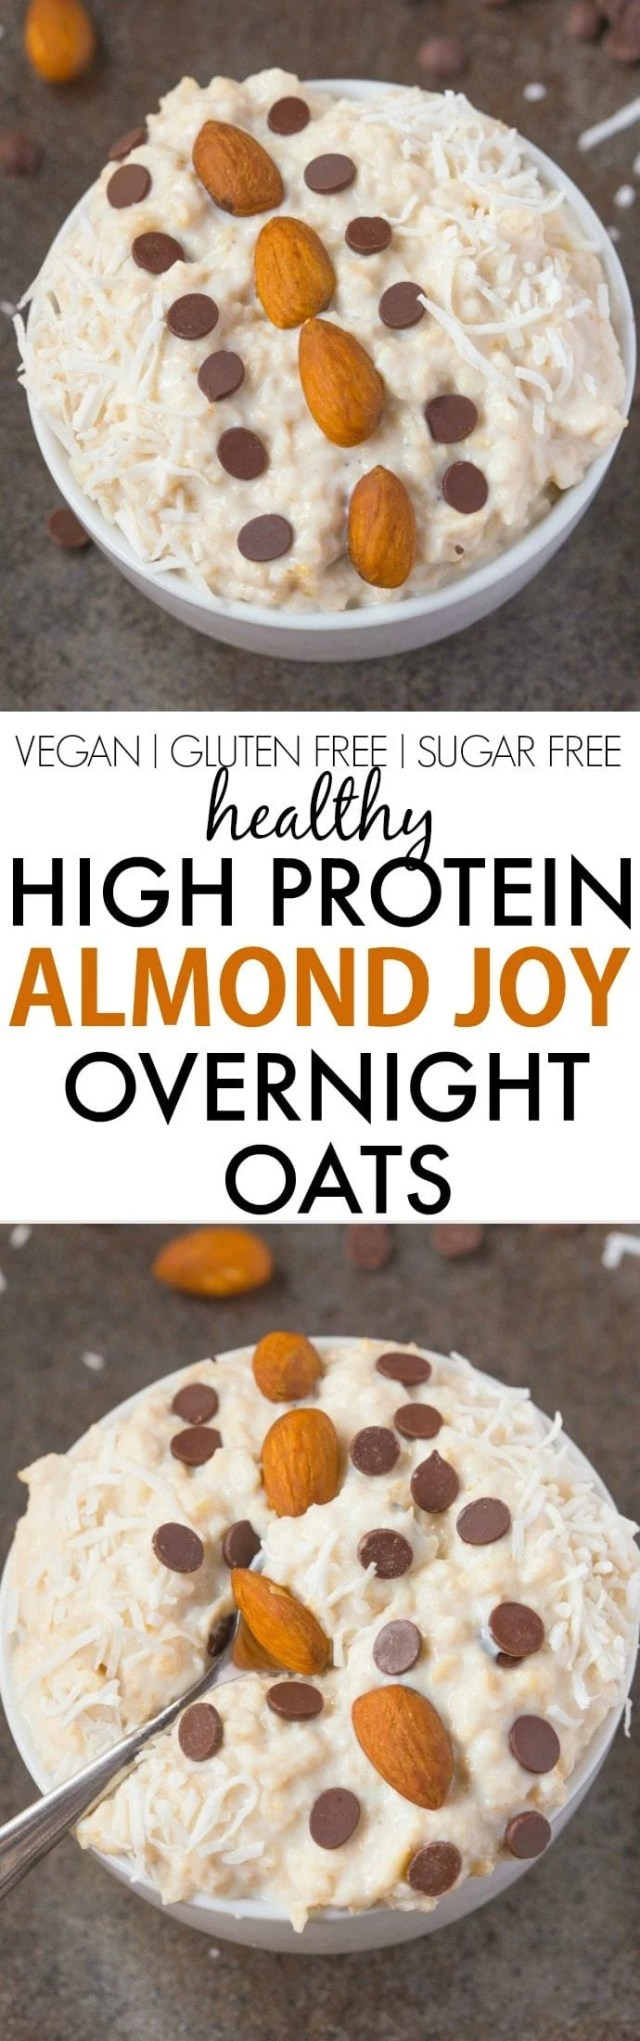 Learn how to make almond joy overnight oats with an option to make it keto too!